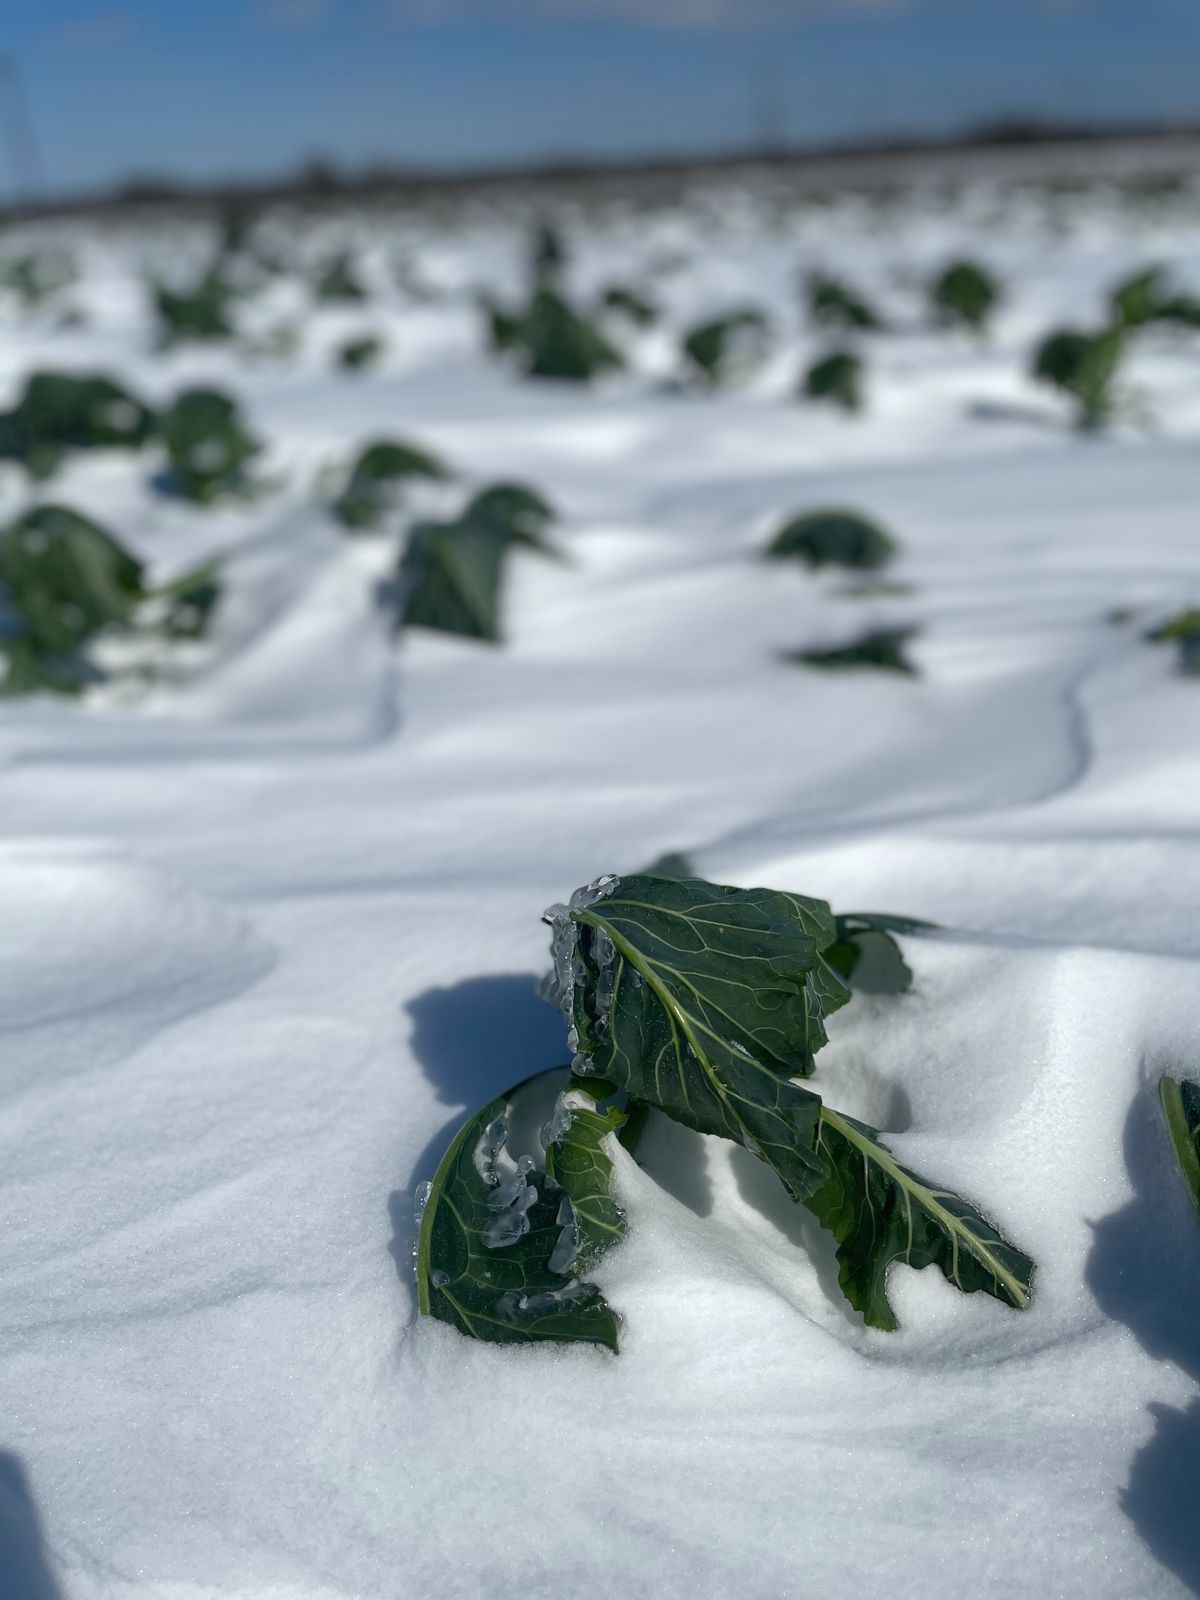 Kale covered in snow